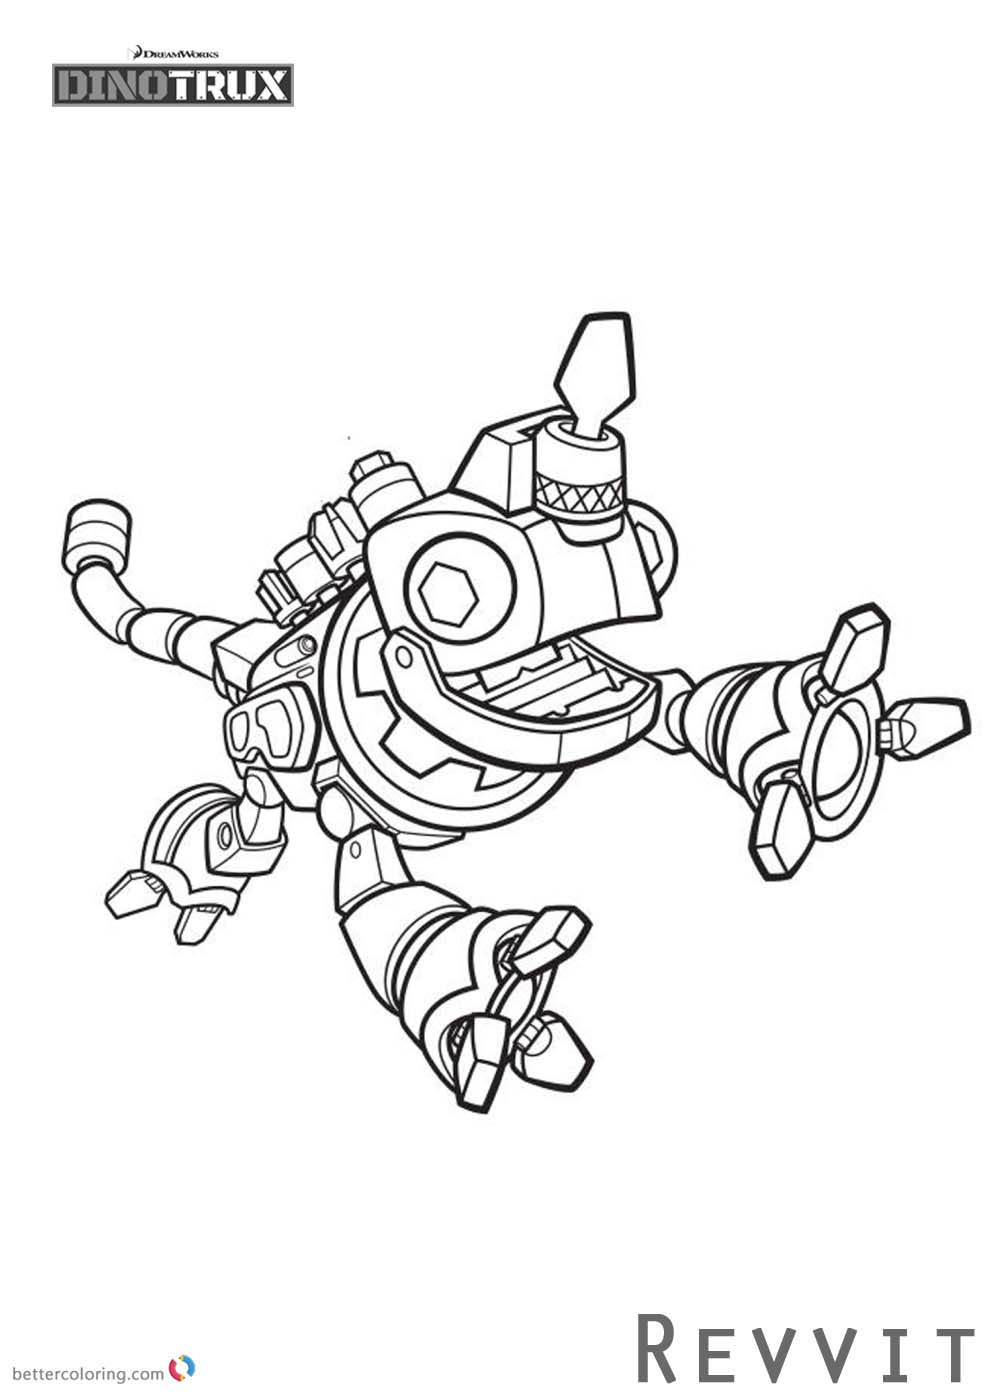 Dinotrux Coloring Pages Revvit Is Jumpping Free Printable Coloring